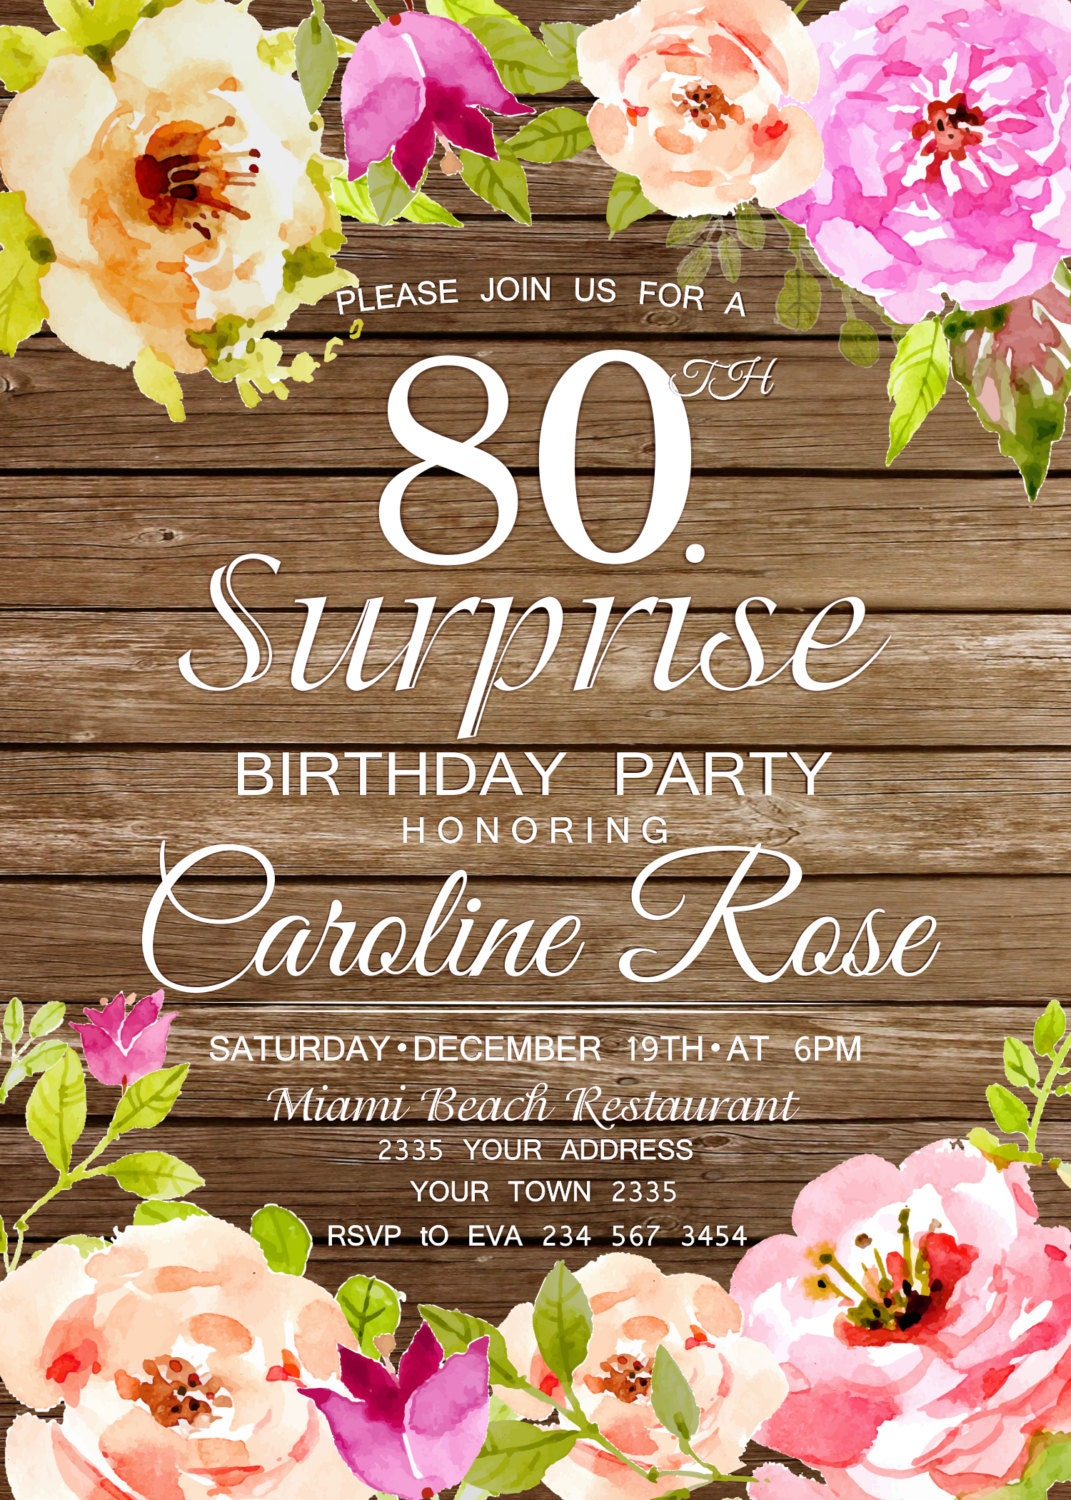 80th birthday invitation surprise birthday party invitation 80th birthday invitation surprise birthday party invitation wooden birthday invitation watercolor flowers filmwisefo Image collections